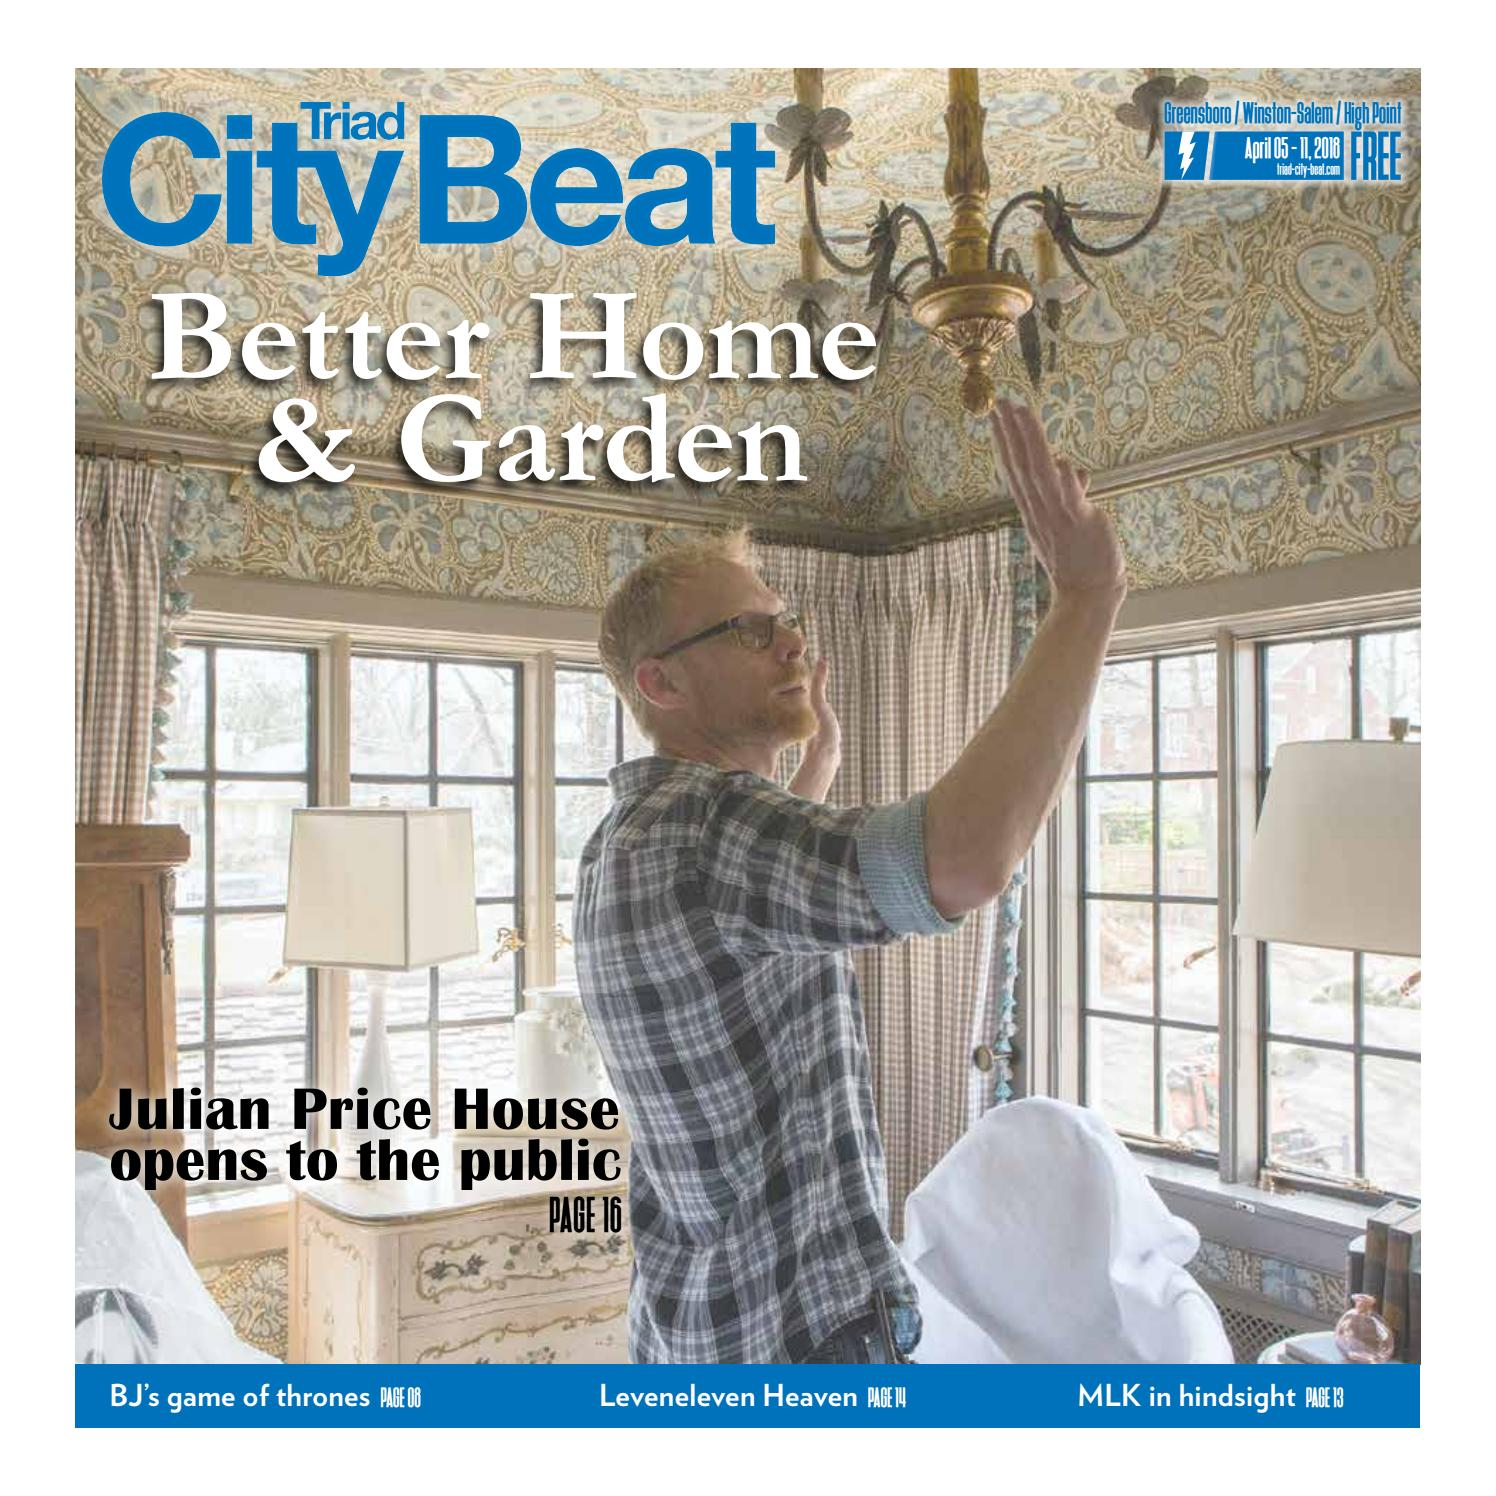 TCB April 5, 2018 — Better Home & Garden by Triad City Beat